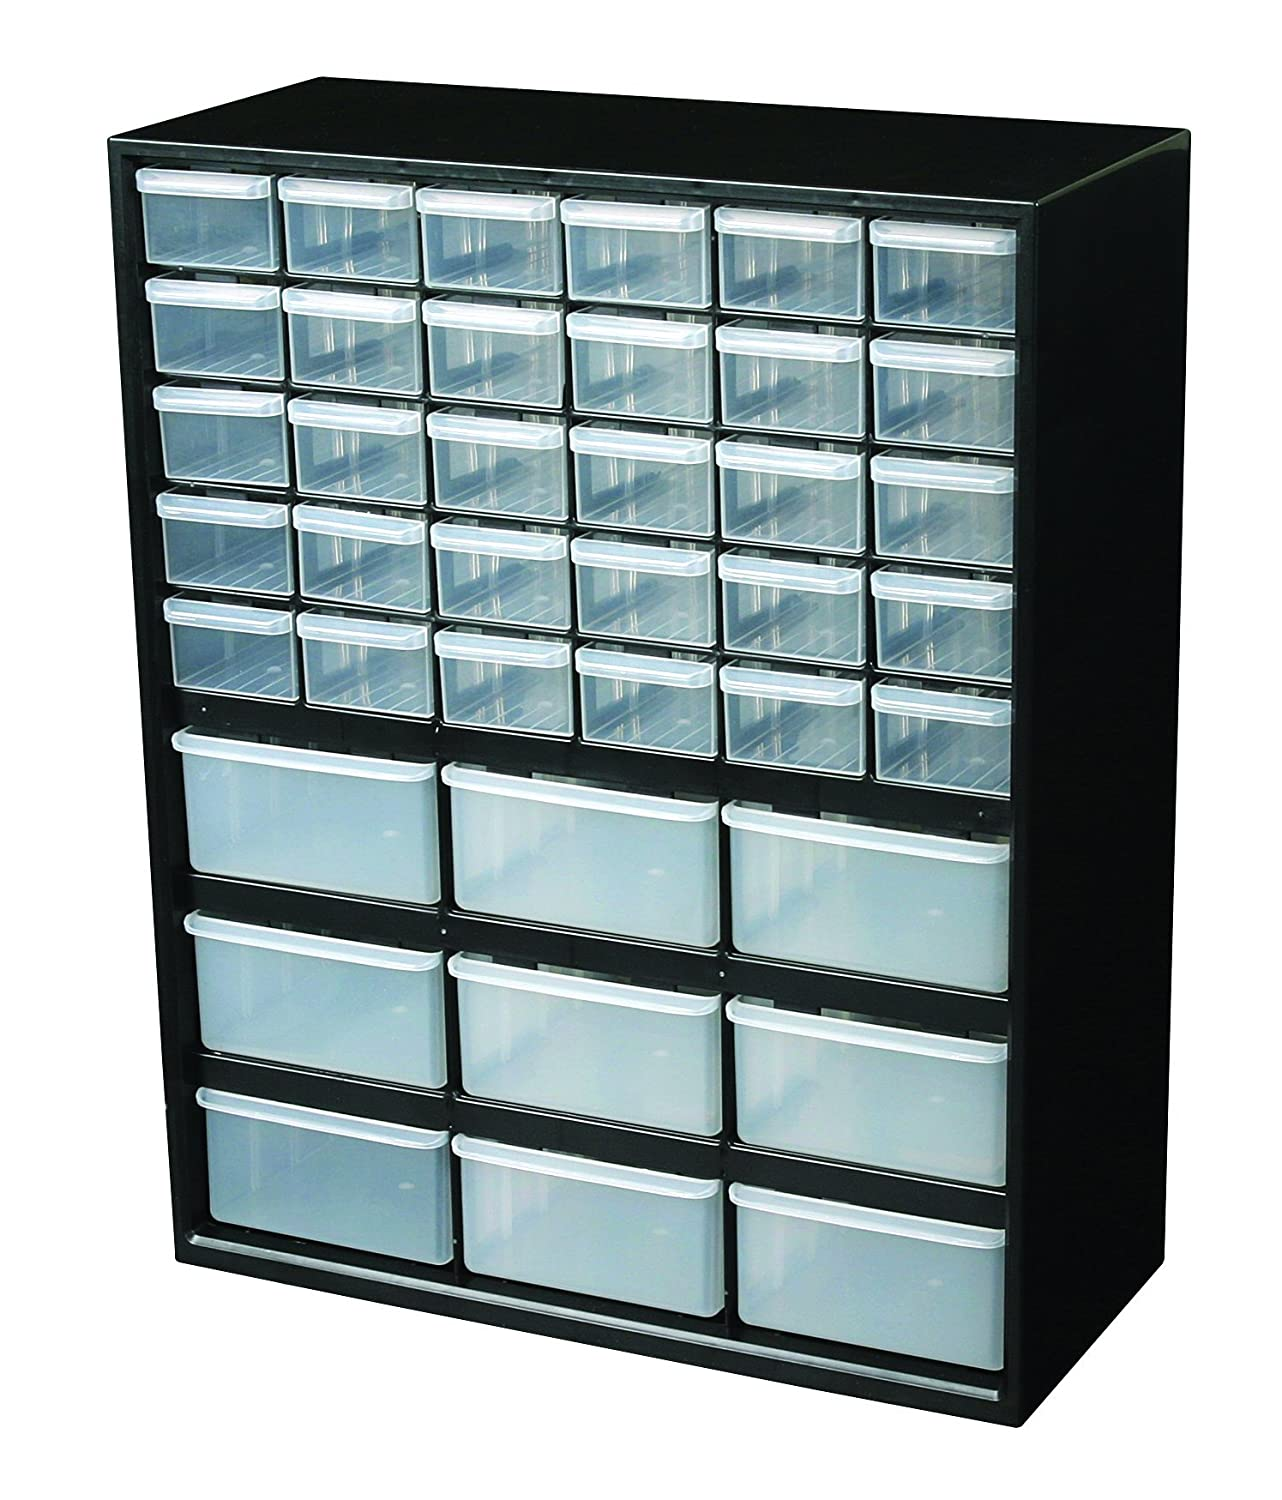 Incroyable Amazon.com: Flambeau 6576ND Parts Storage Drawer, Hardware And Craft  Cabinet With 39 Drawers: Home Improvement